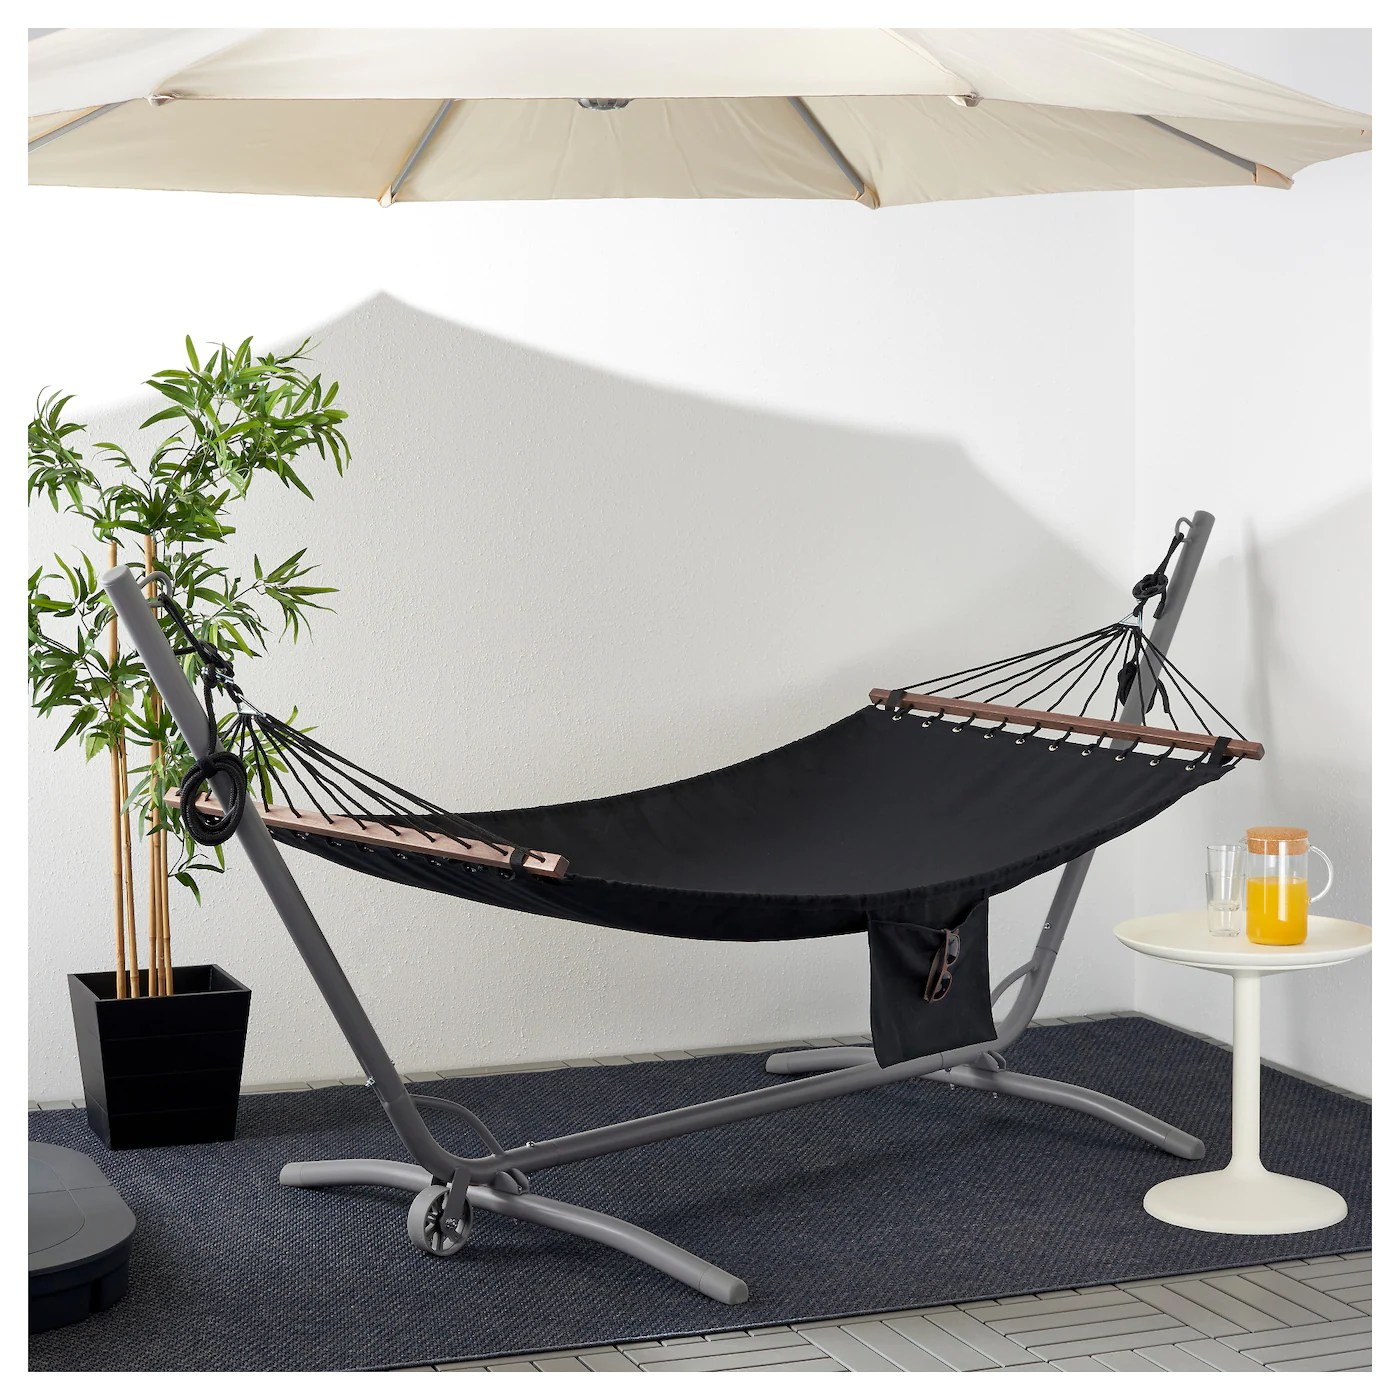 hanging chair stand ikea covers galway gÅrÖ fredÖn hammock with grey black